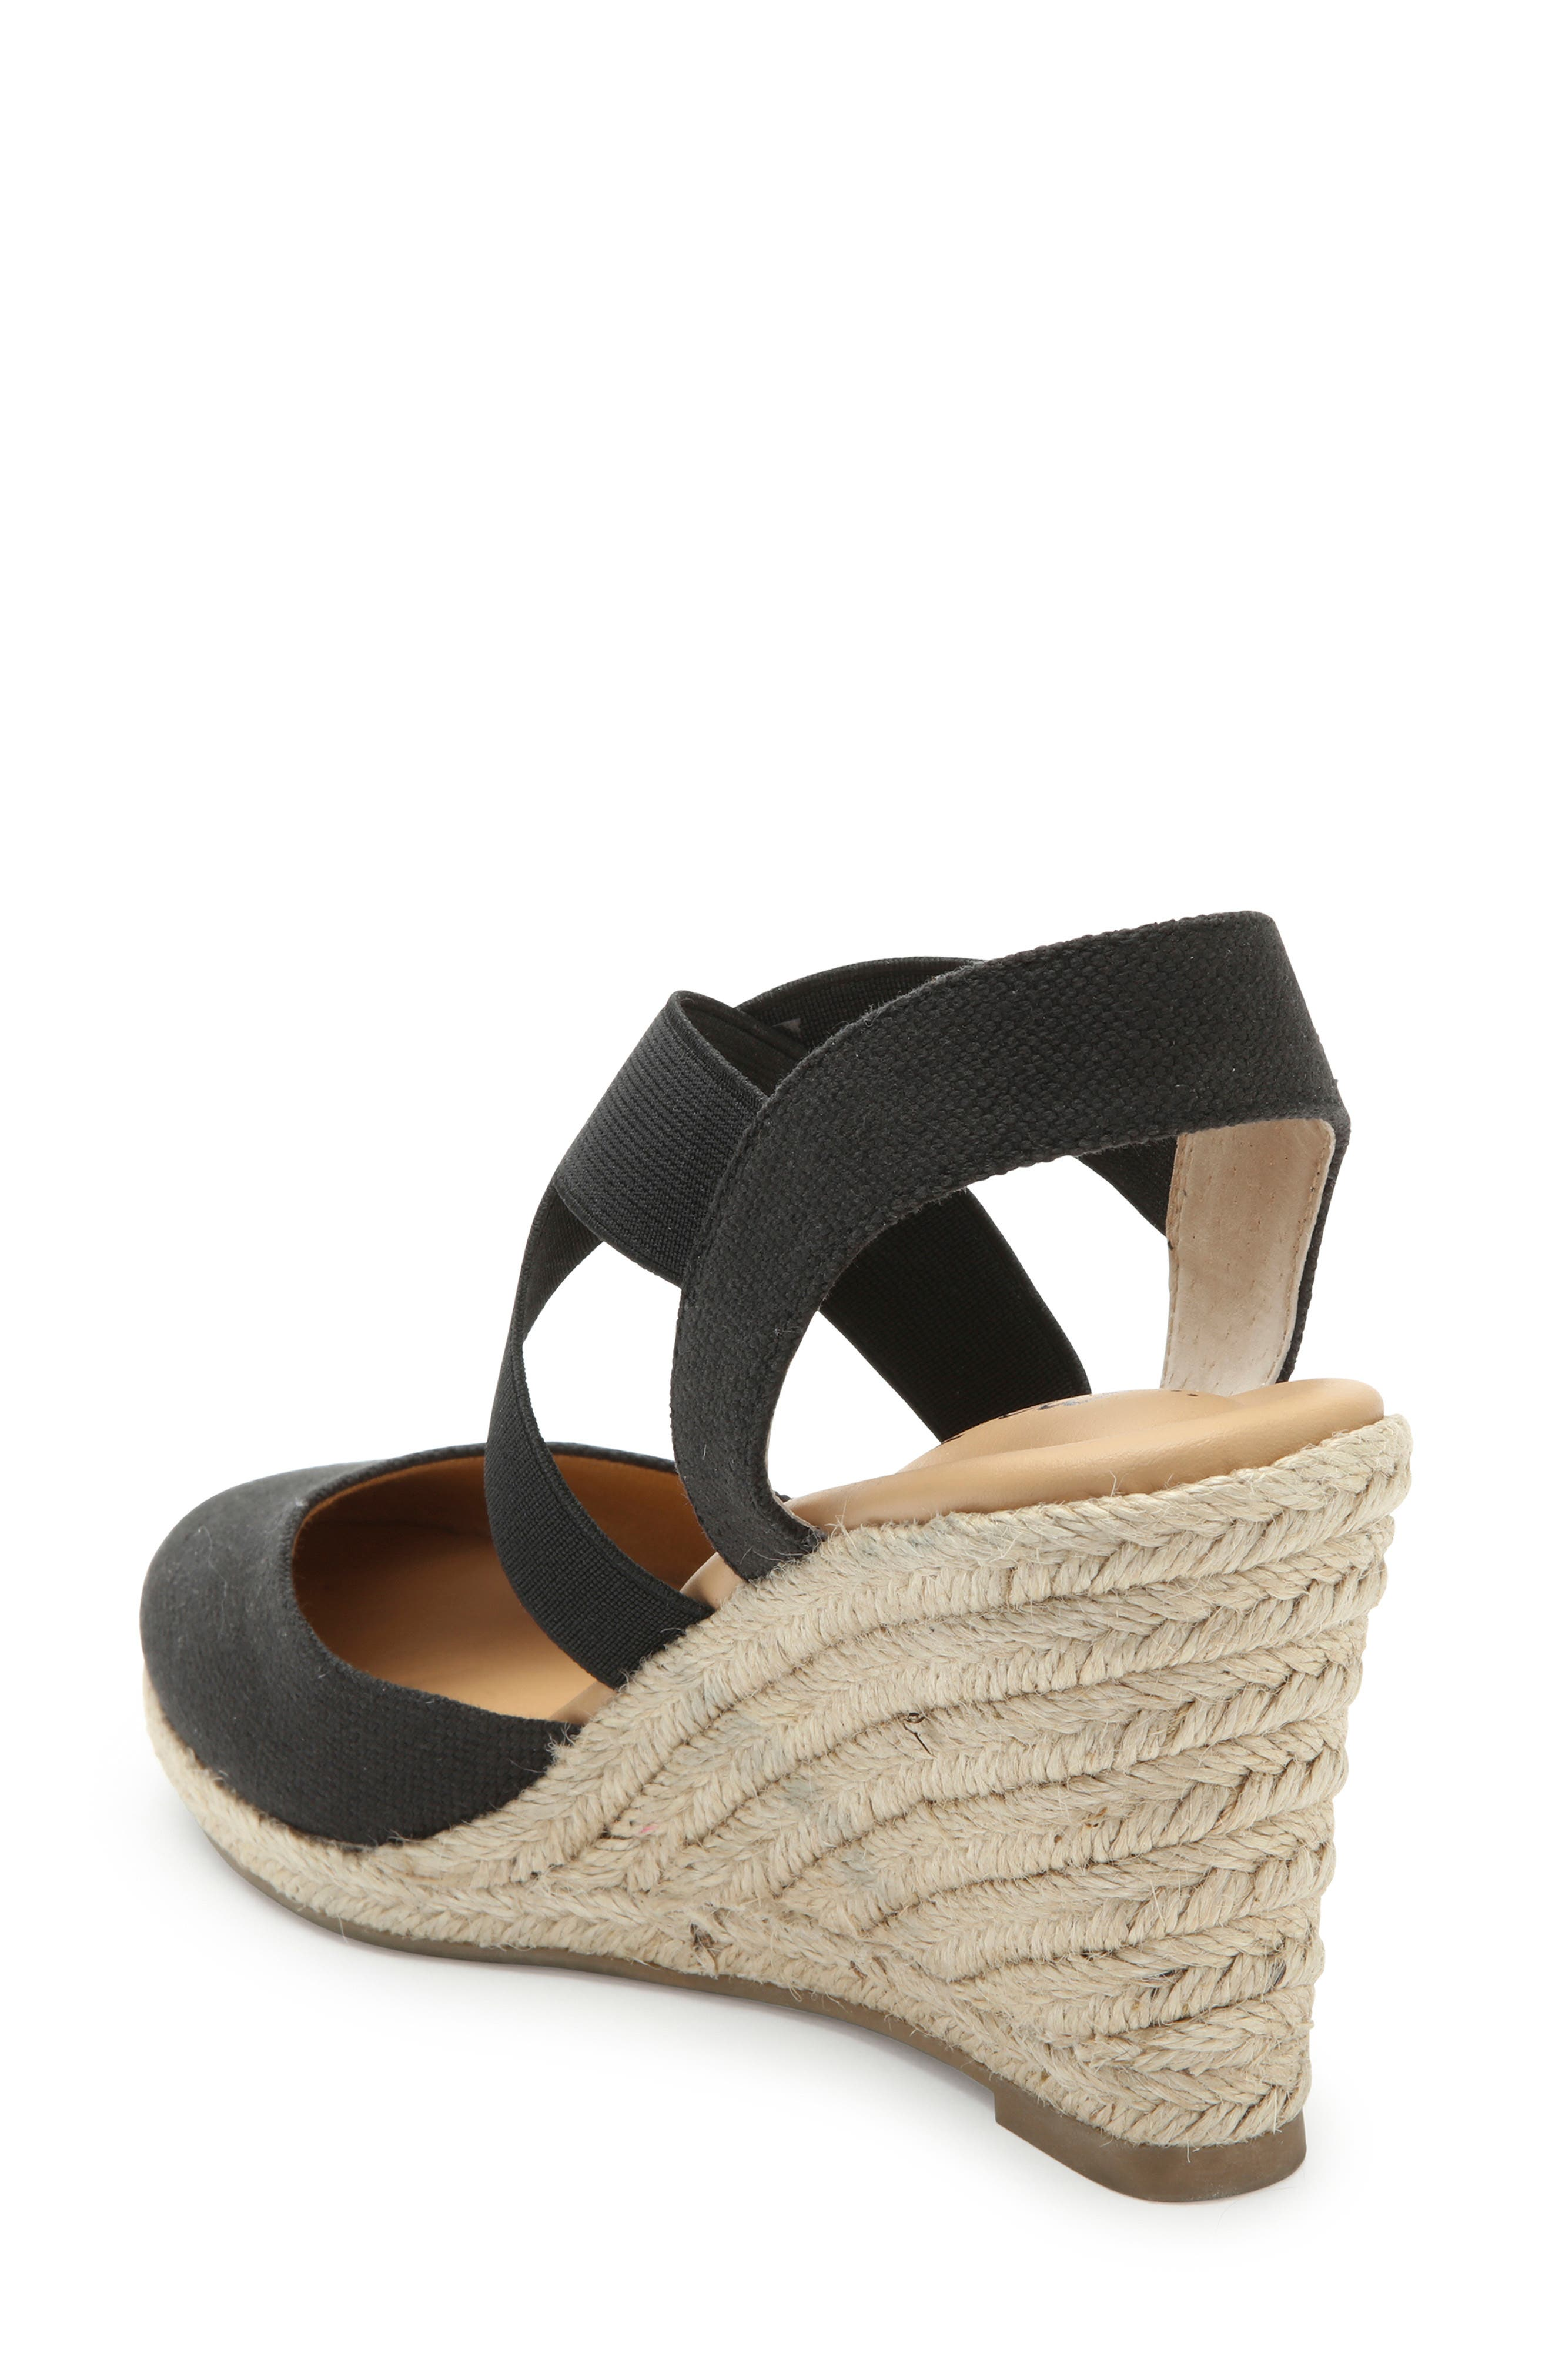 ME TOO, Brinley Espadrille Wedge, Alternate thumbnail 2, color, BLACK CANVAS